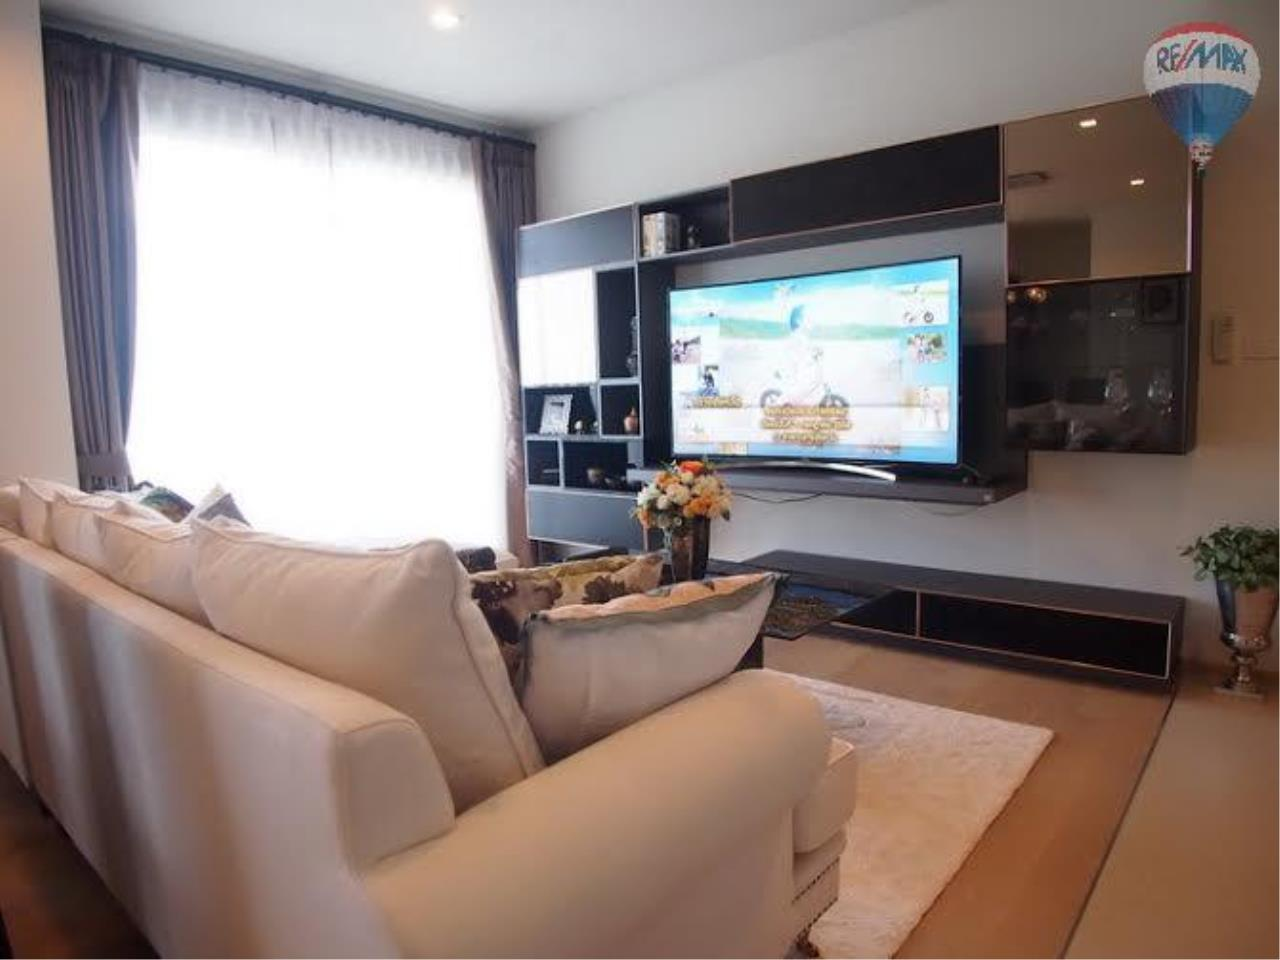 RE/MAX Properties Agency's 2 Bedrooms 100 Sq.M. in HQ by Sansiri for sale 4